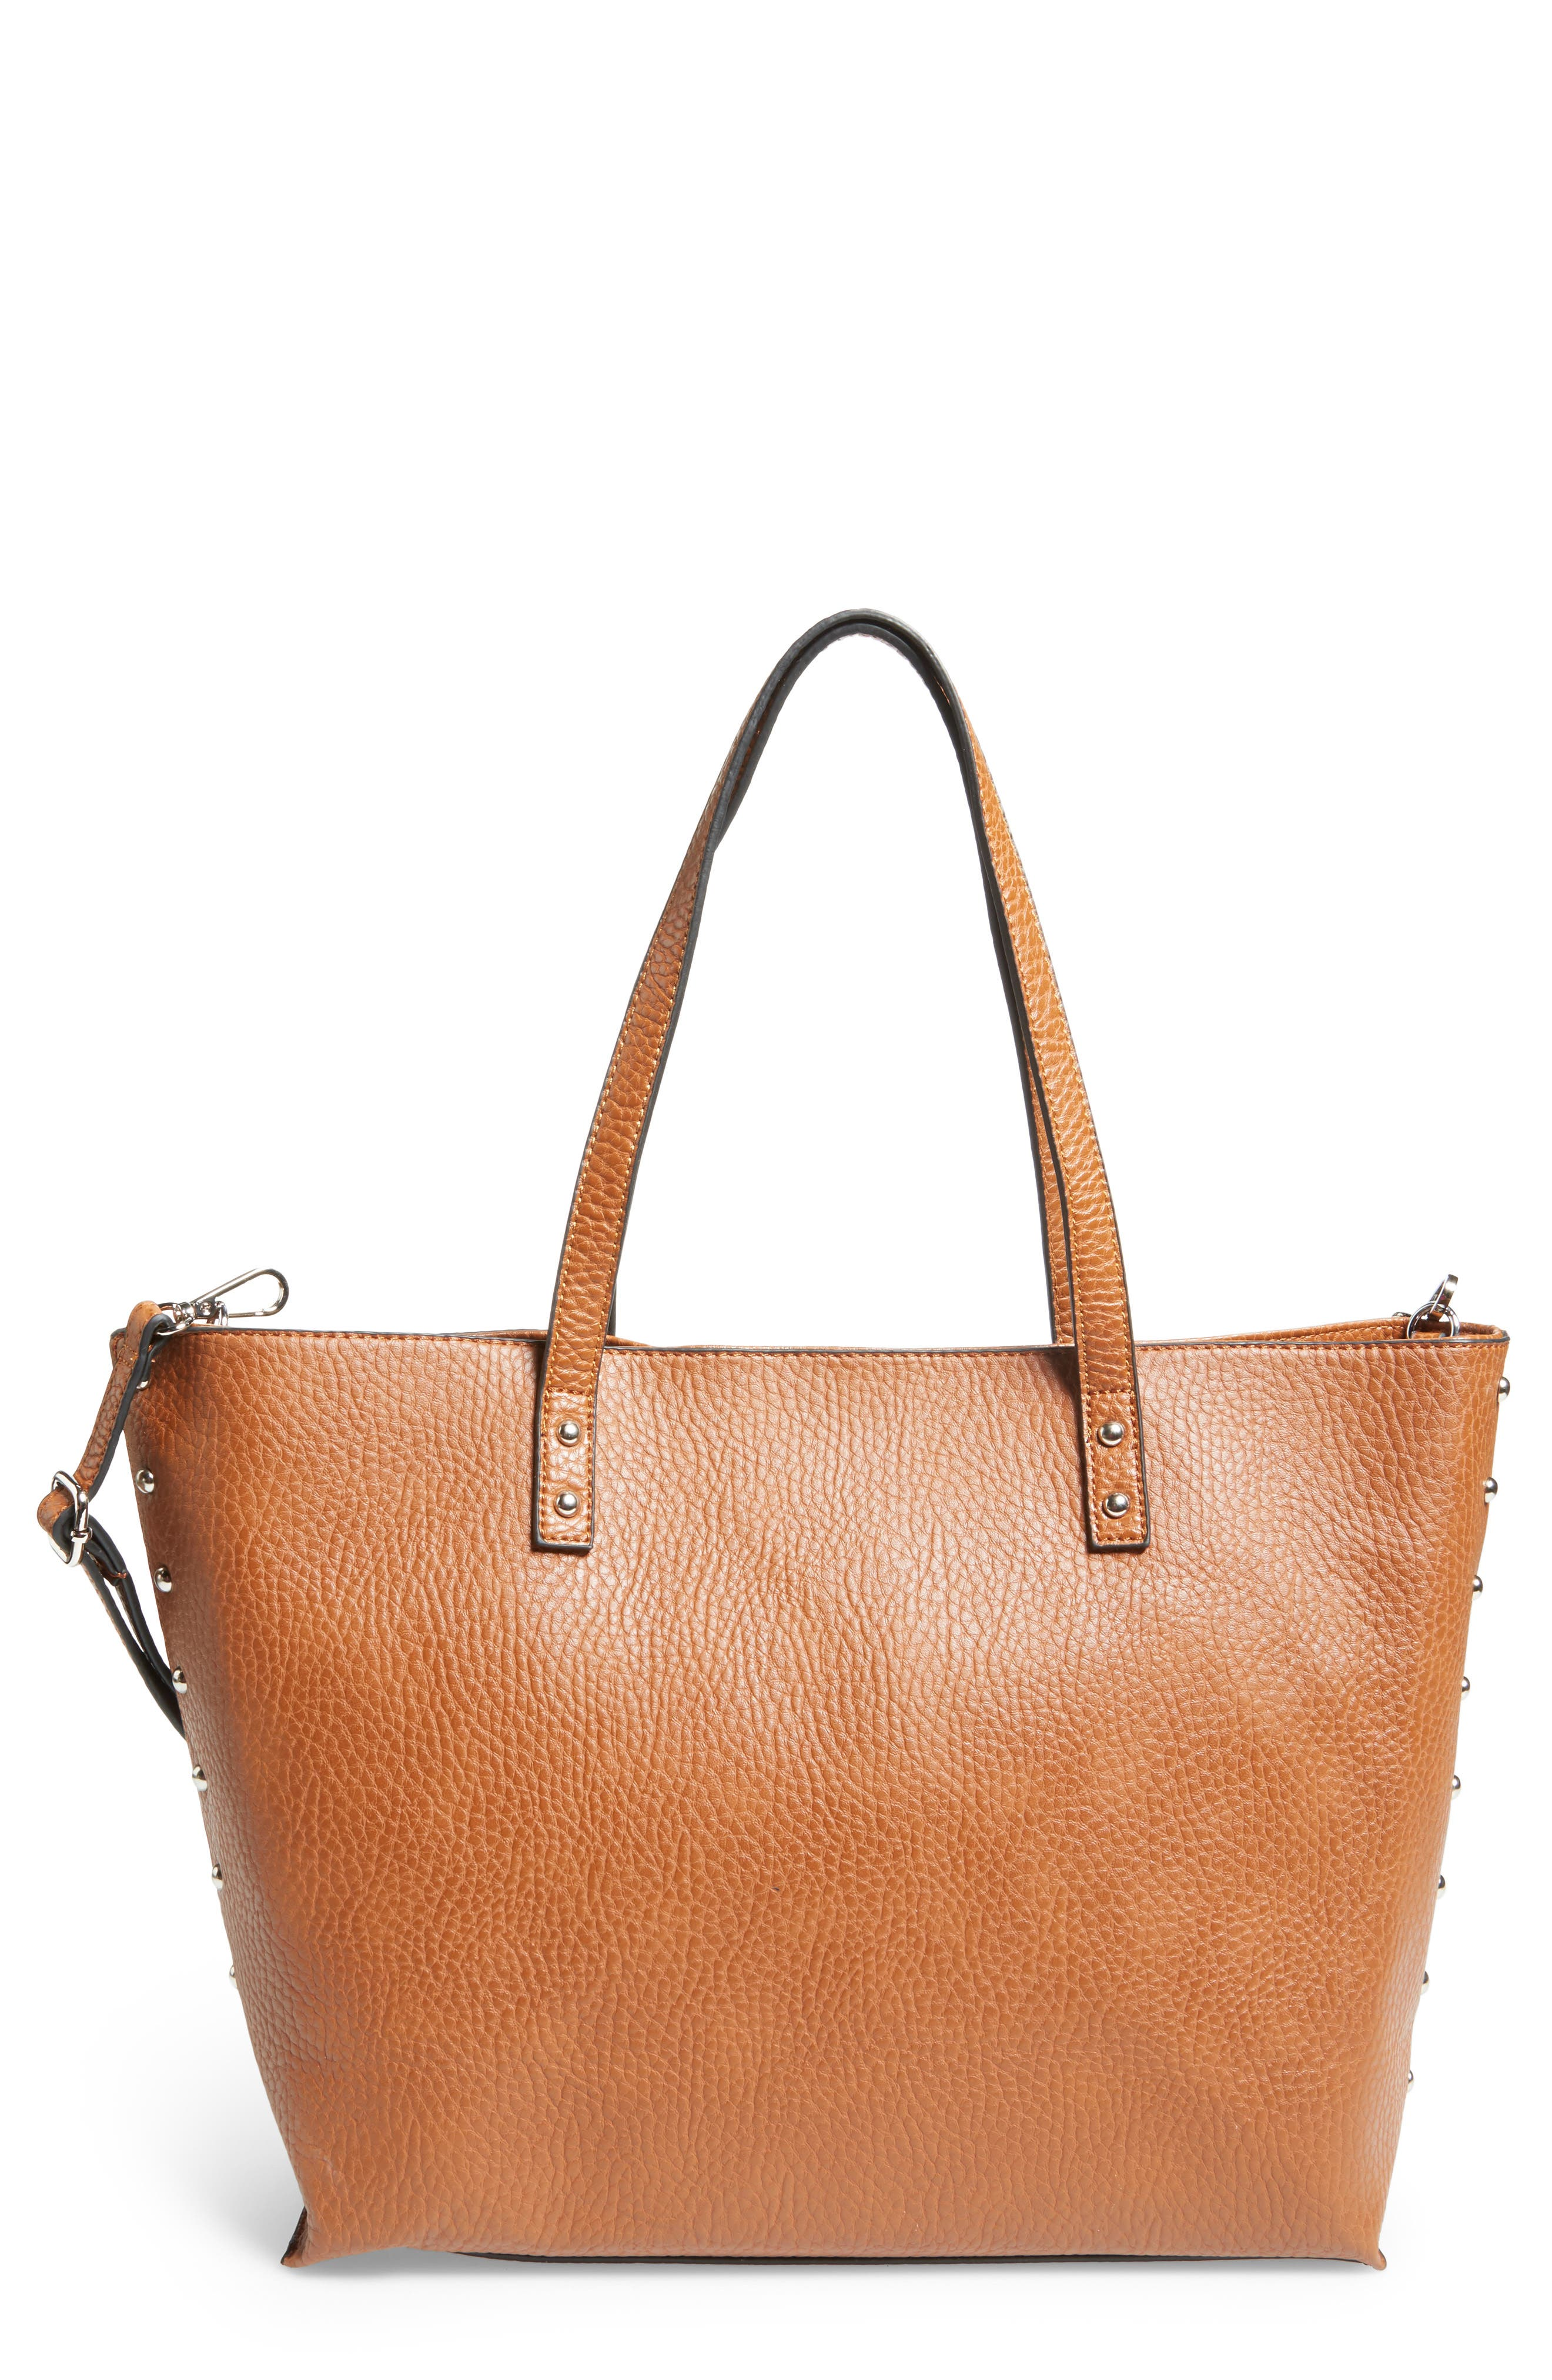 Linea Pelle Faux Leather Tote